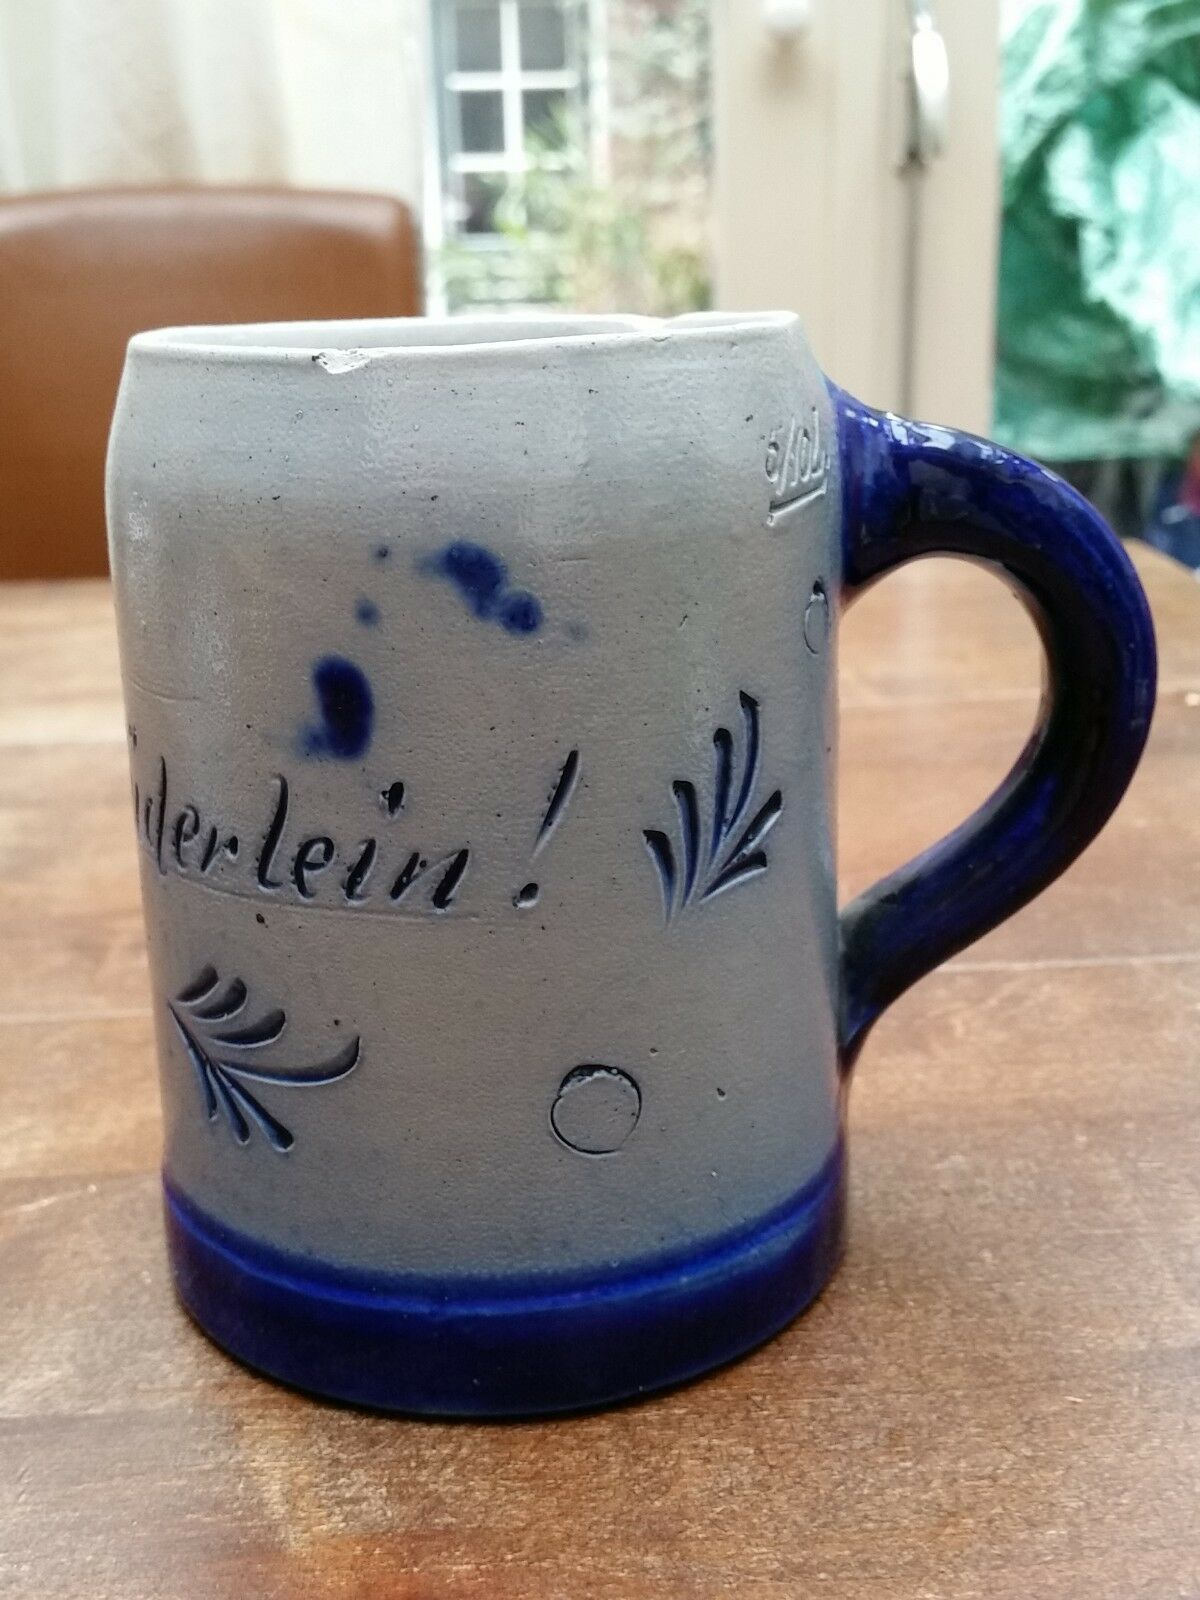 VINTAGE GERMAN SALT GLAZED 0.5L BEER MUG STEIN, COBALT BLUE & GRAY 4.7